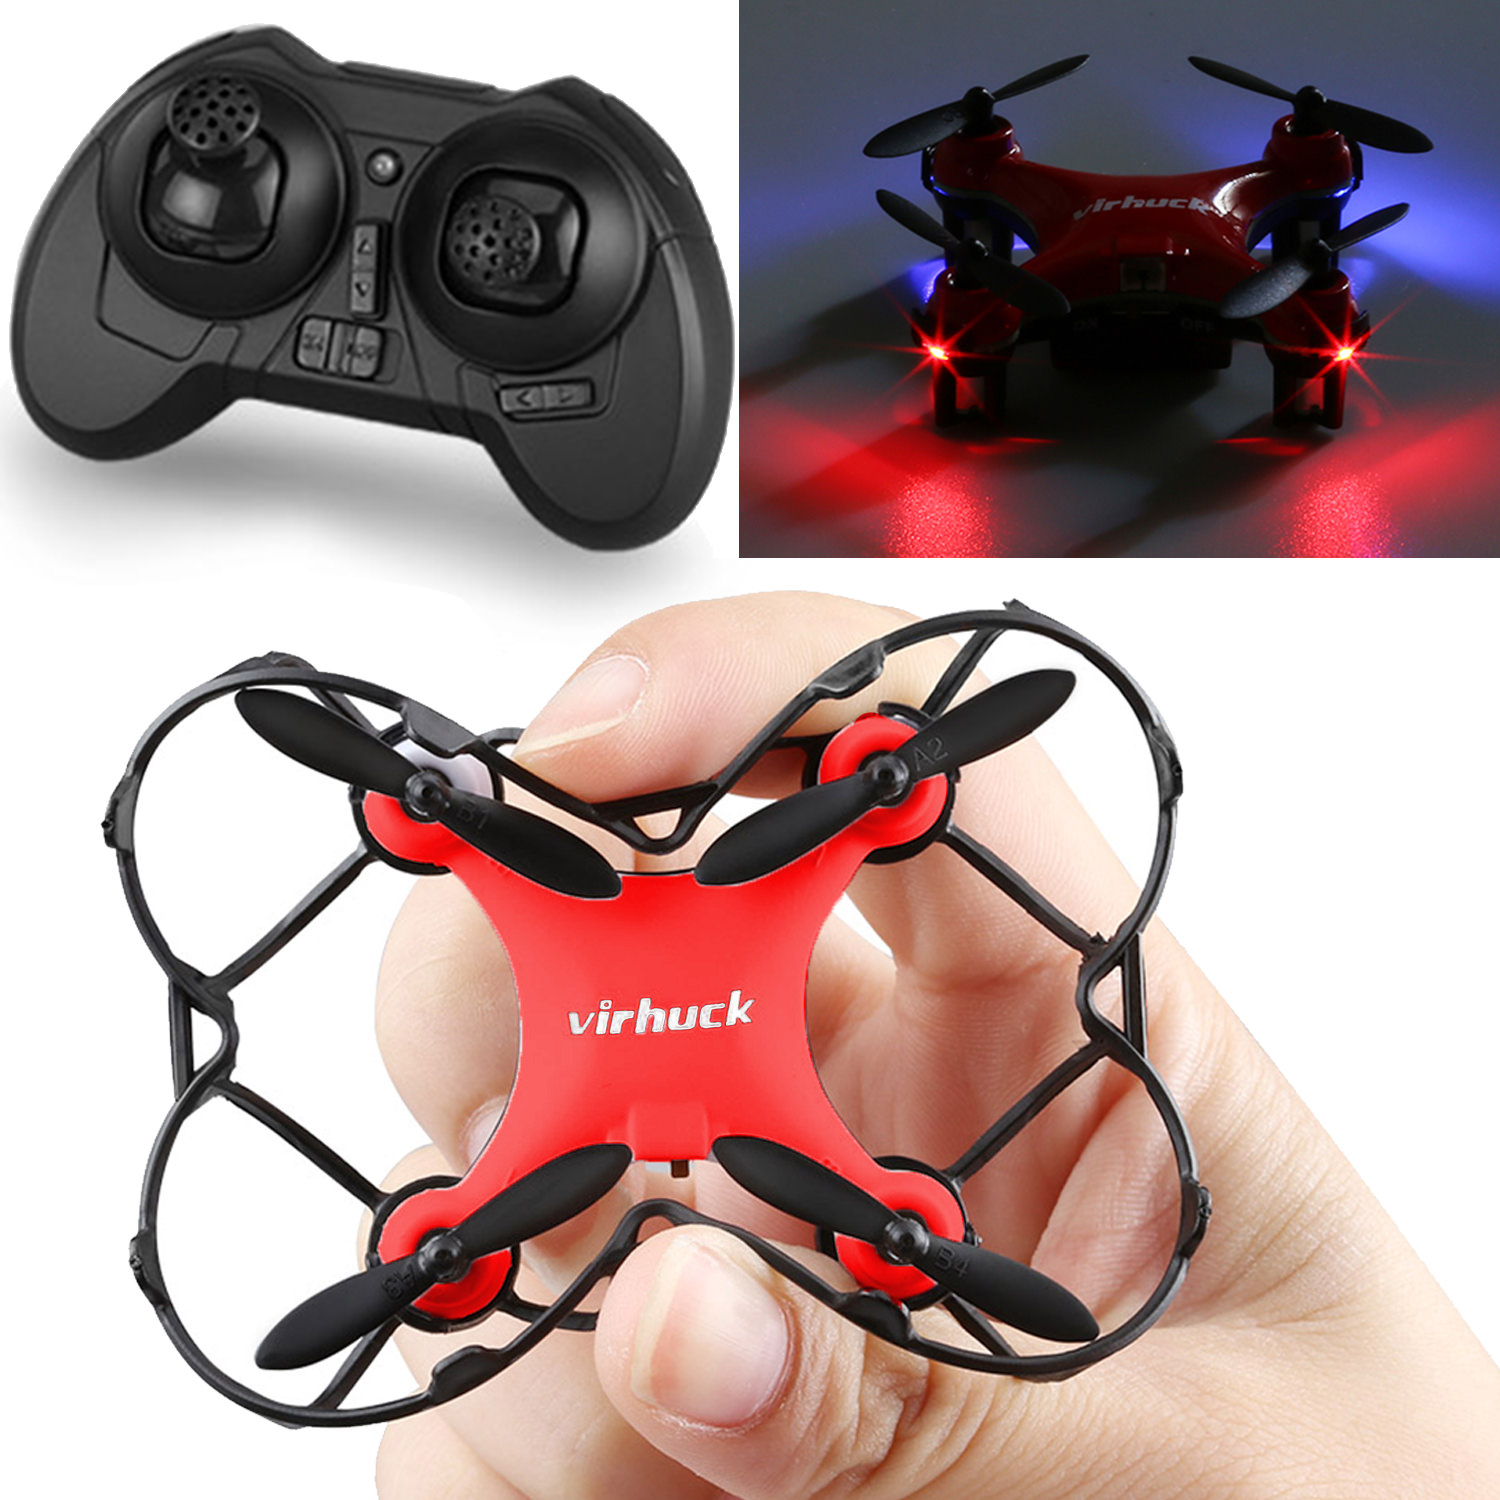 Virhuck GB202 Mini Pocket Quadcopter Remote Control 6 AXIS GYRO System Aircraft, Red